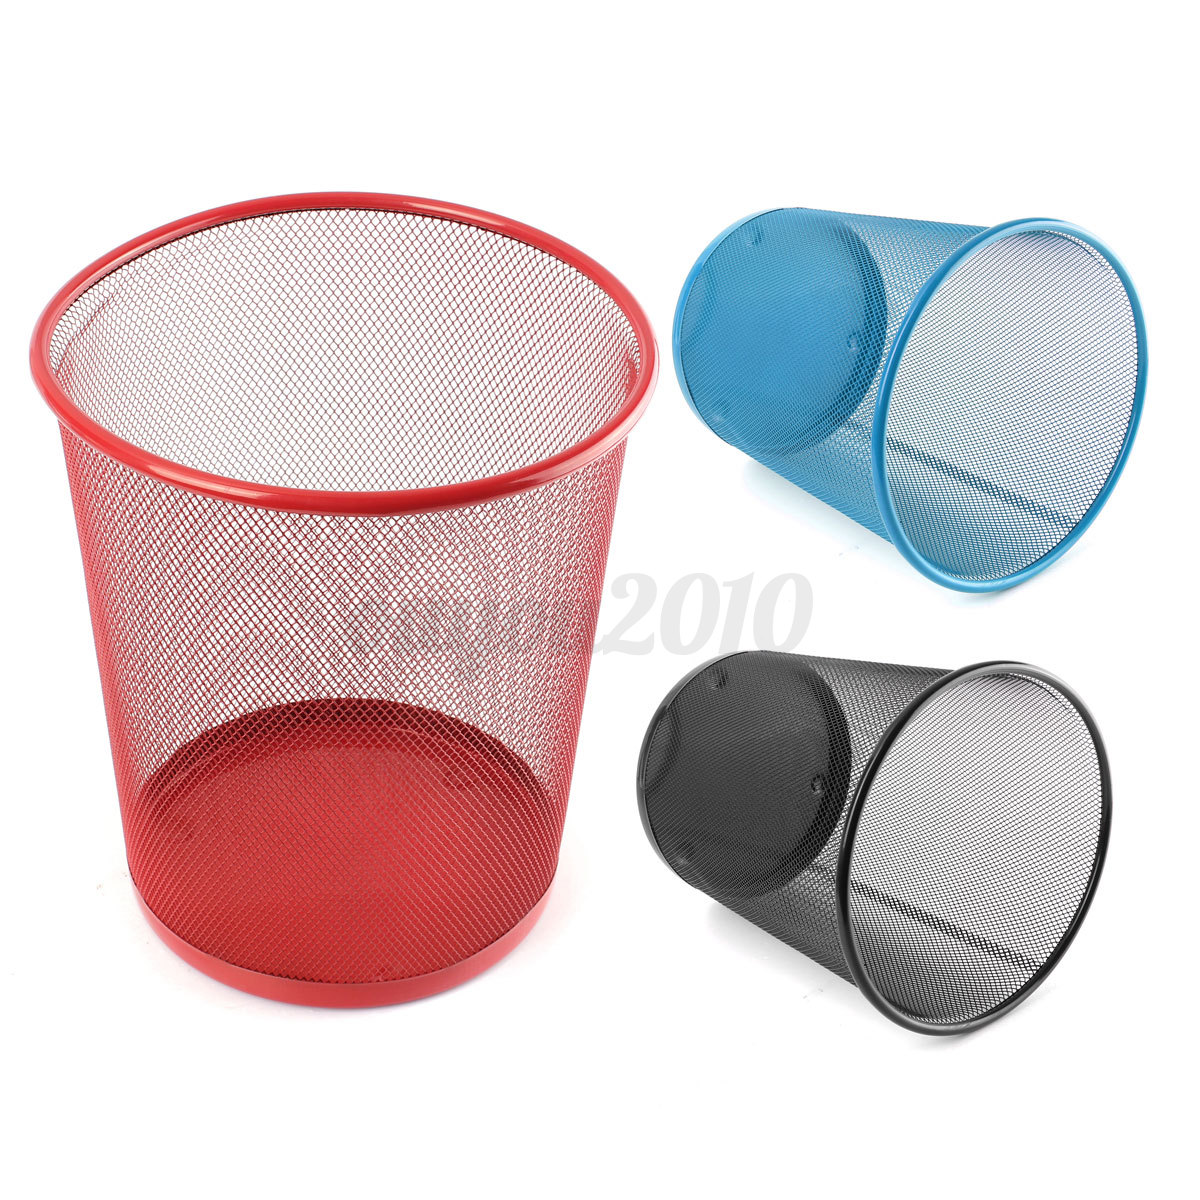 Durable Metal Mesh Trash Can Dustbin Garbage Bin Hotel Home